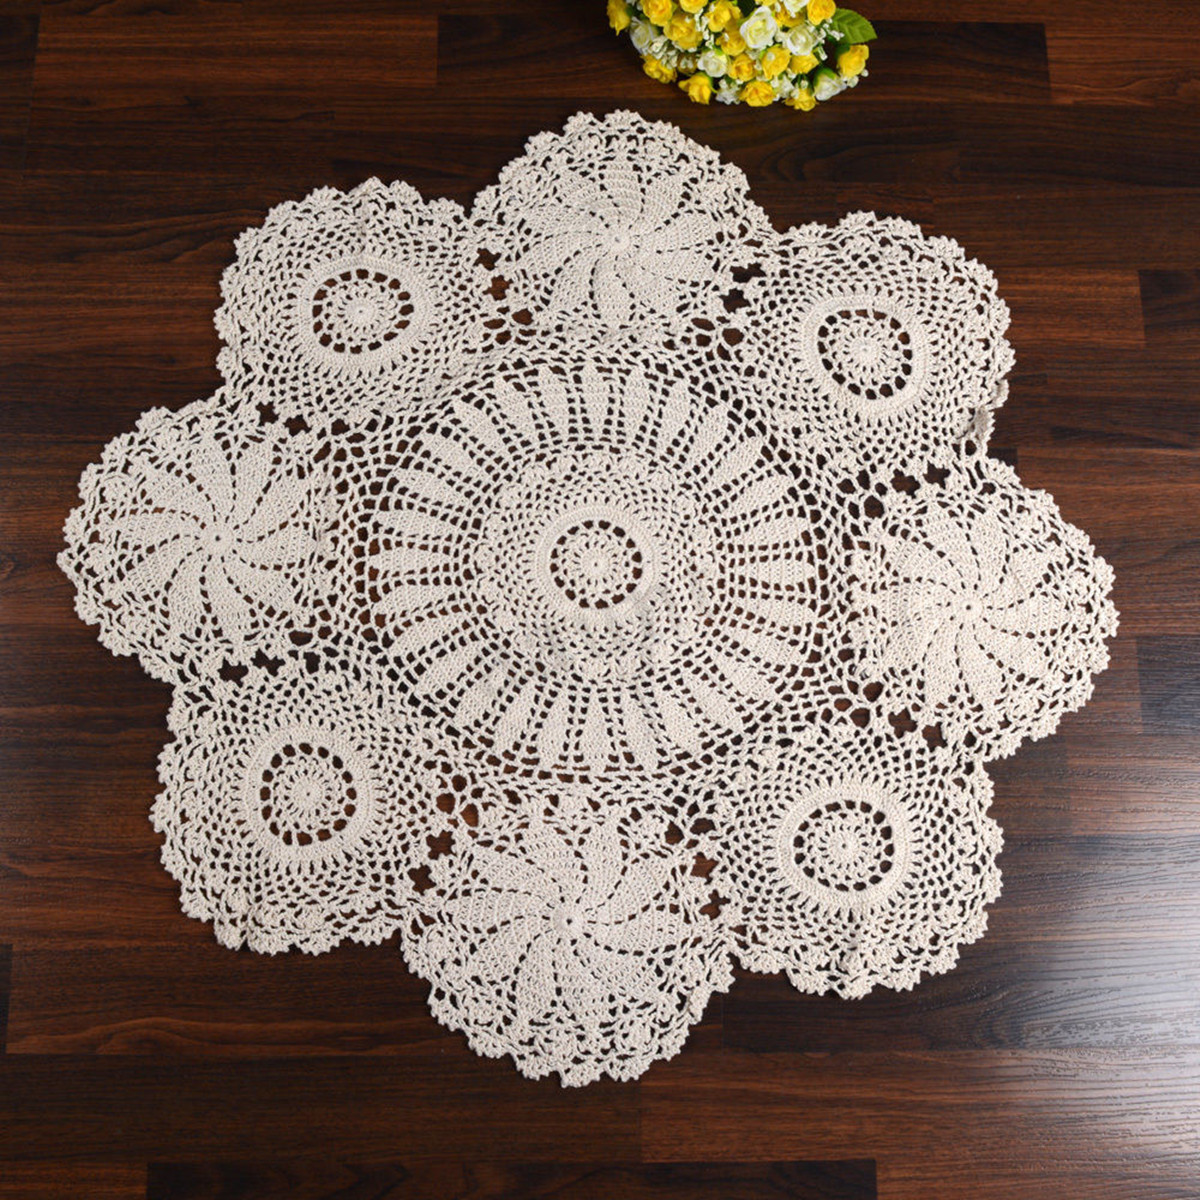 Doily Crafts Fresh Hand Crocheted Cotton Yarn Round Lace Doily Mat Vintage Of Contemporary 47 Photos Doily Crafts